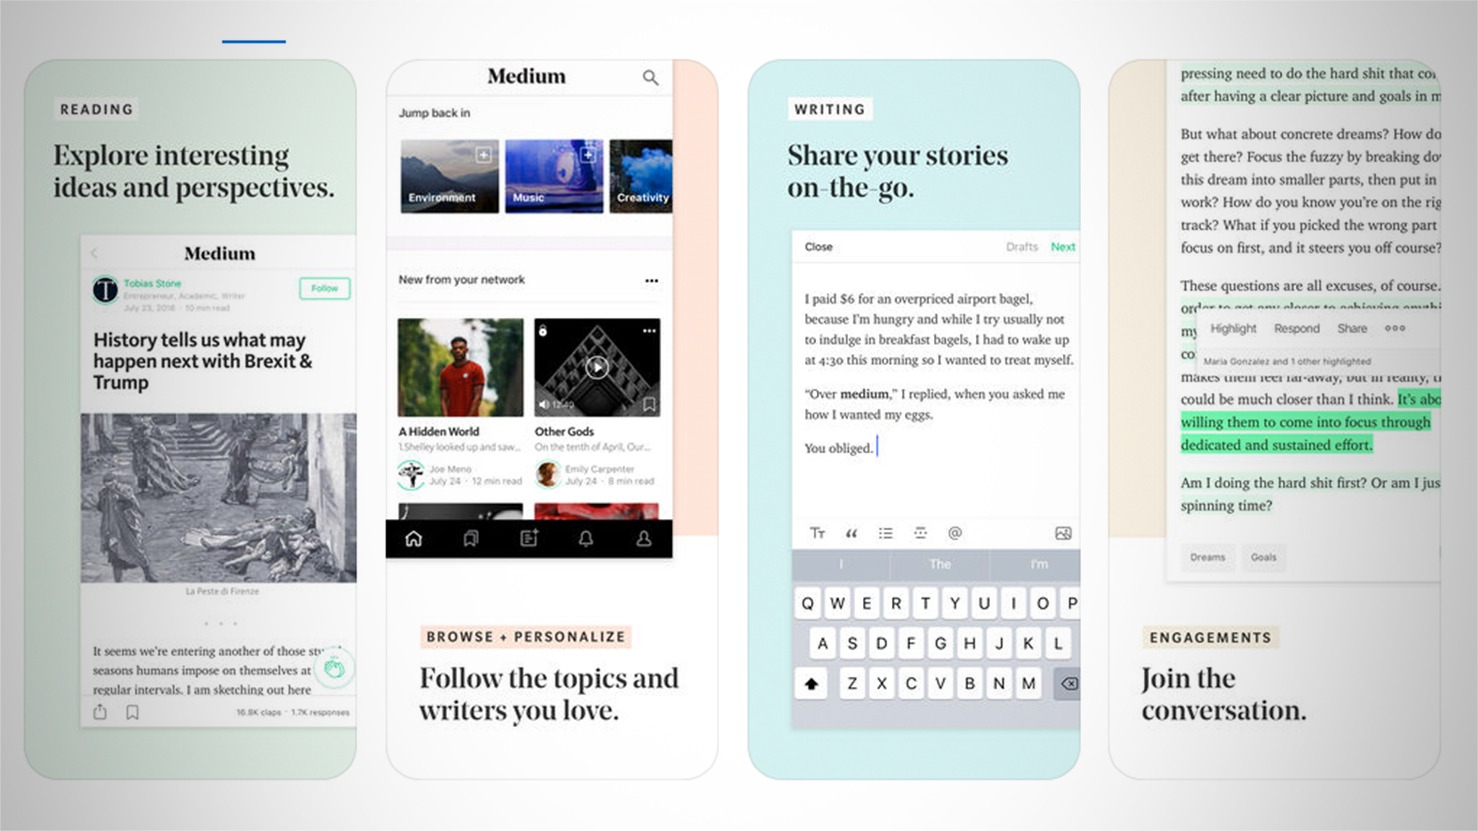 Latest Apps News iPhone, Android & Windows - SolidSmack